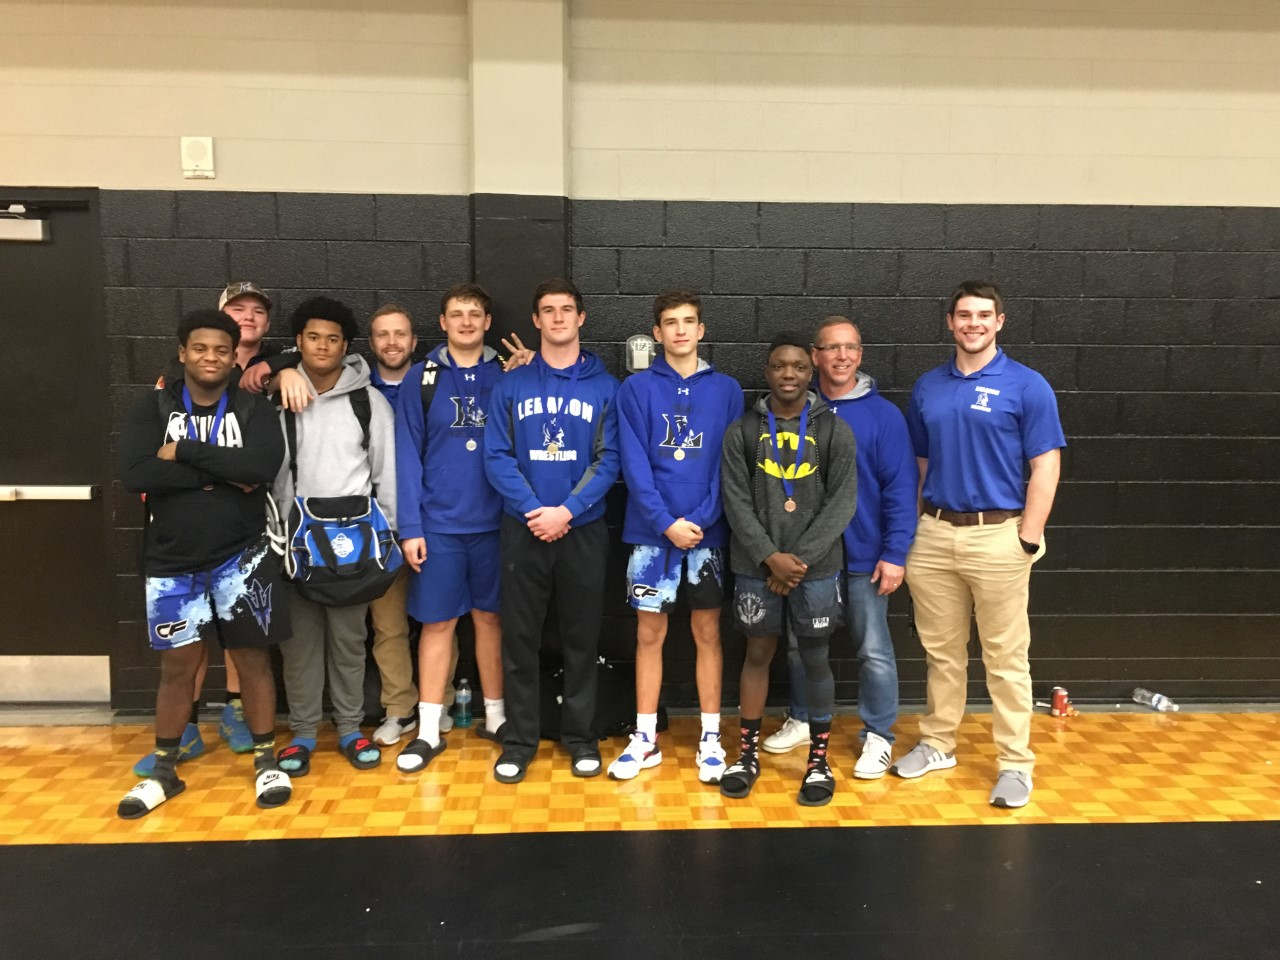 Congratulations Wrestling team- Finished 3rd as a team in the Region and has 7 state qualifiers